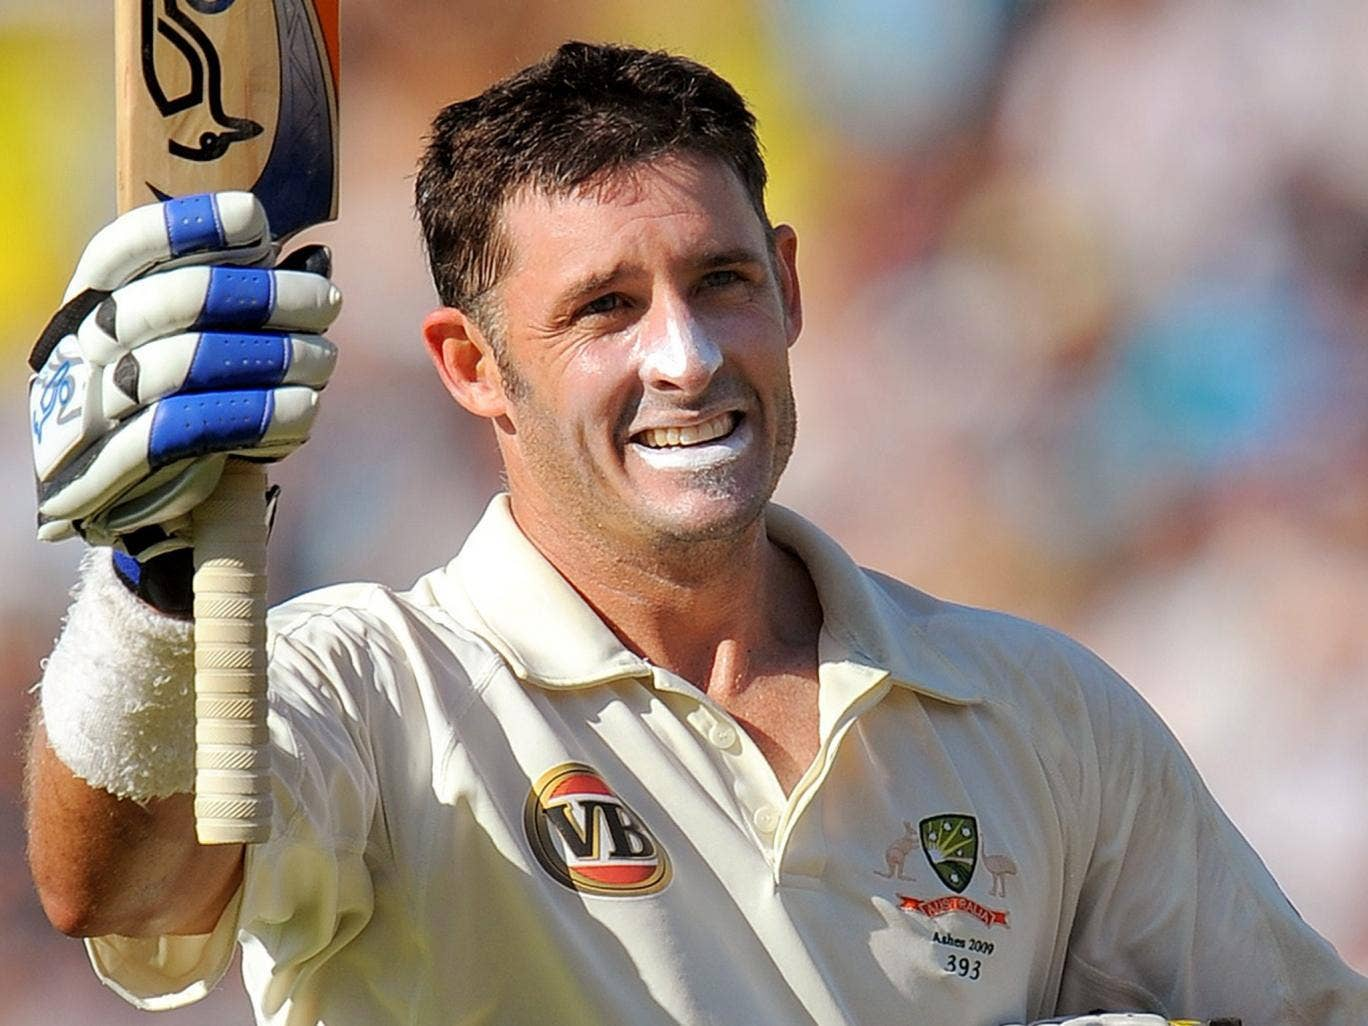 With Michael Hussey announcing his intention to quit international cricket just weeks after ex-captain Ricky Ponting retired, Australia could turn to England for a replacement ahead of the Ashes this summer